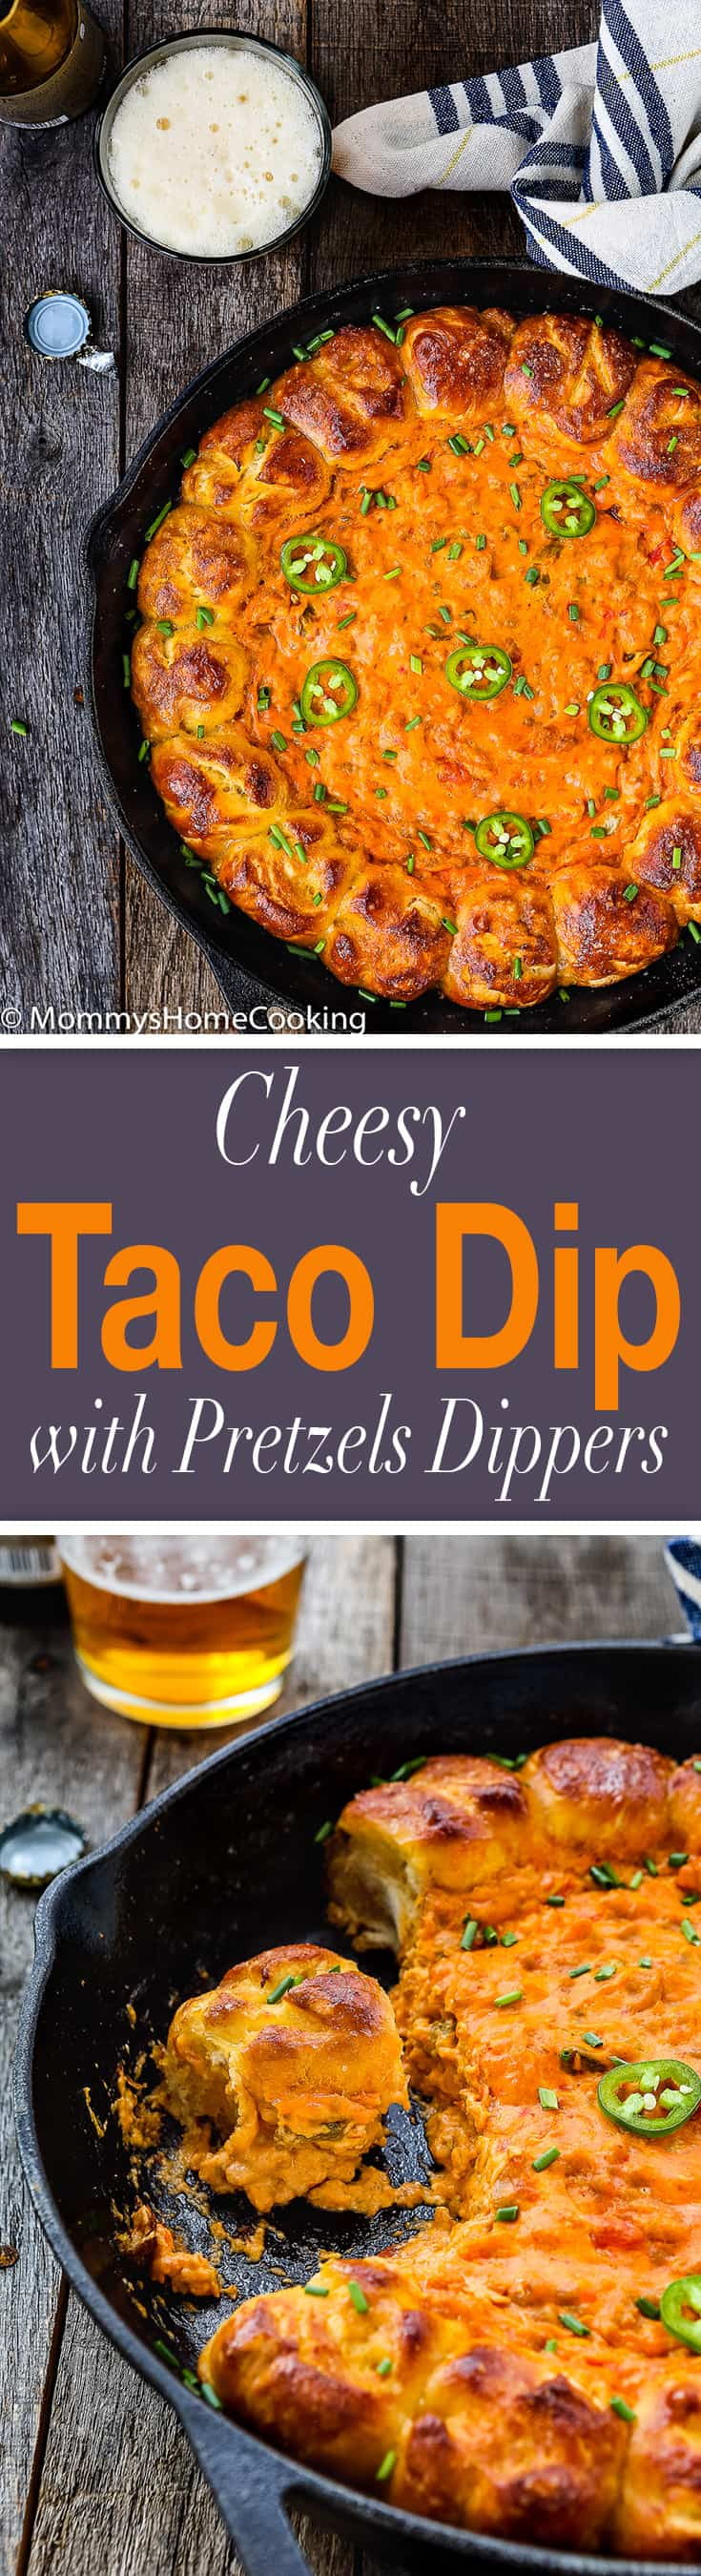 Cheesy Taco Dip with Garlic Pretzels Dippers   Mommy's Home Cooking